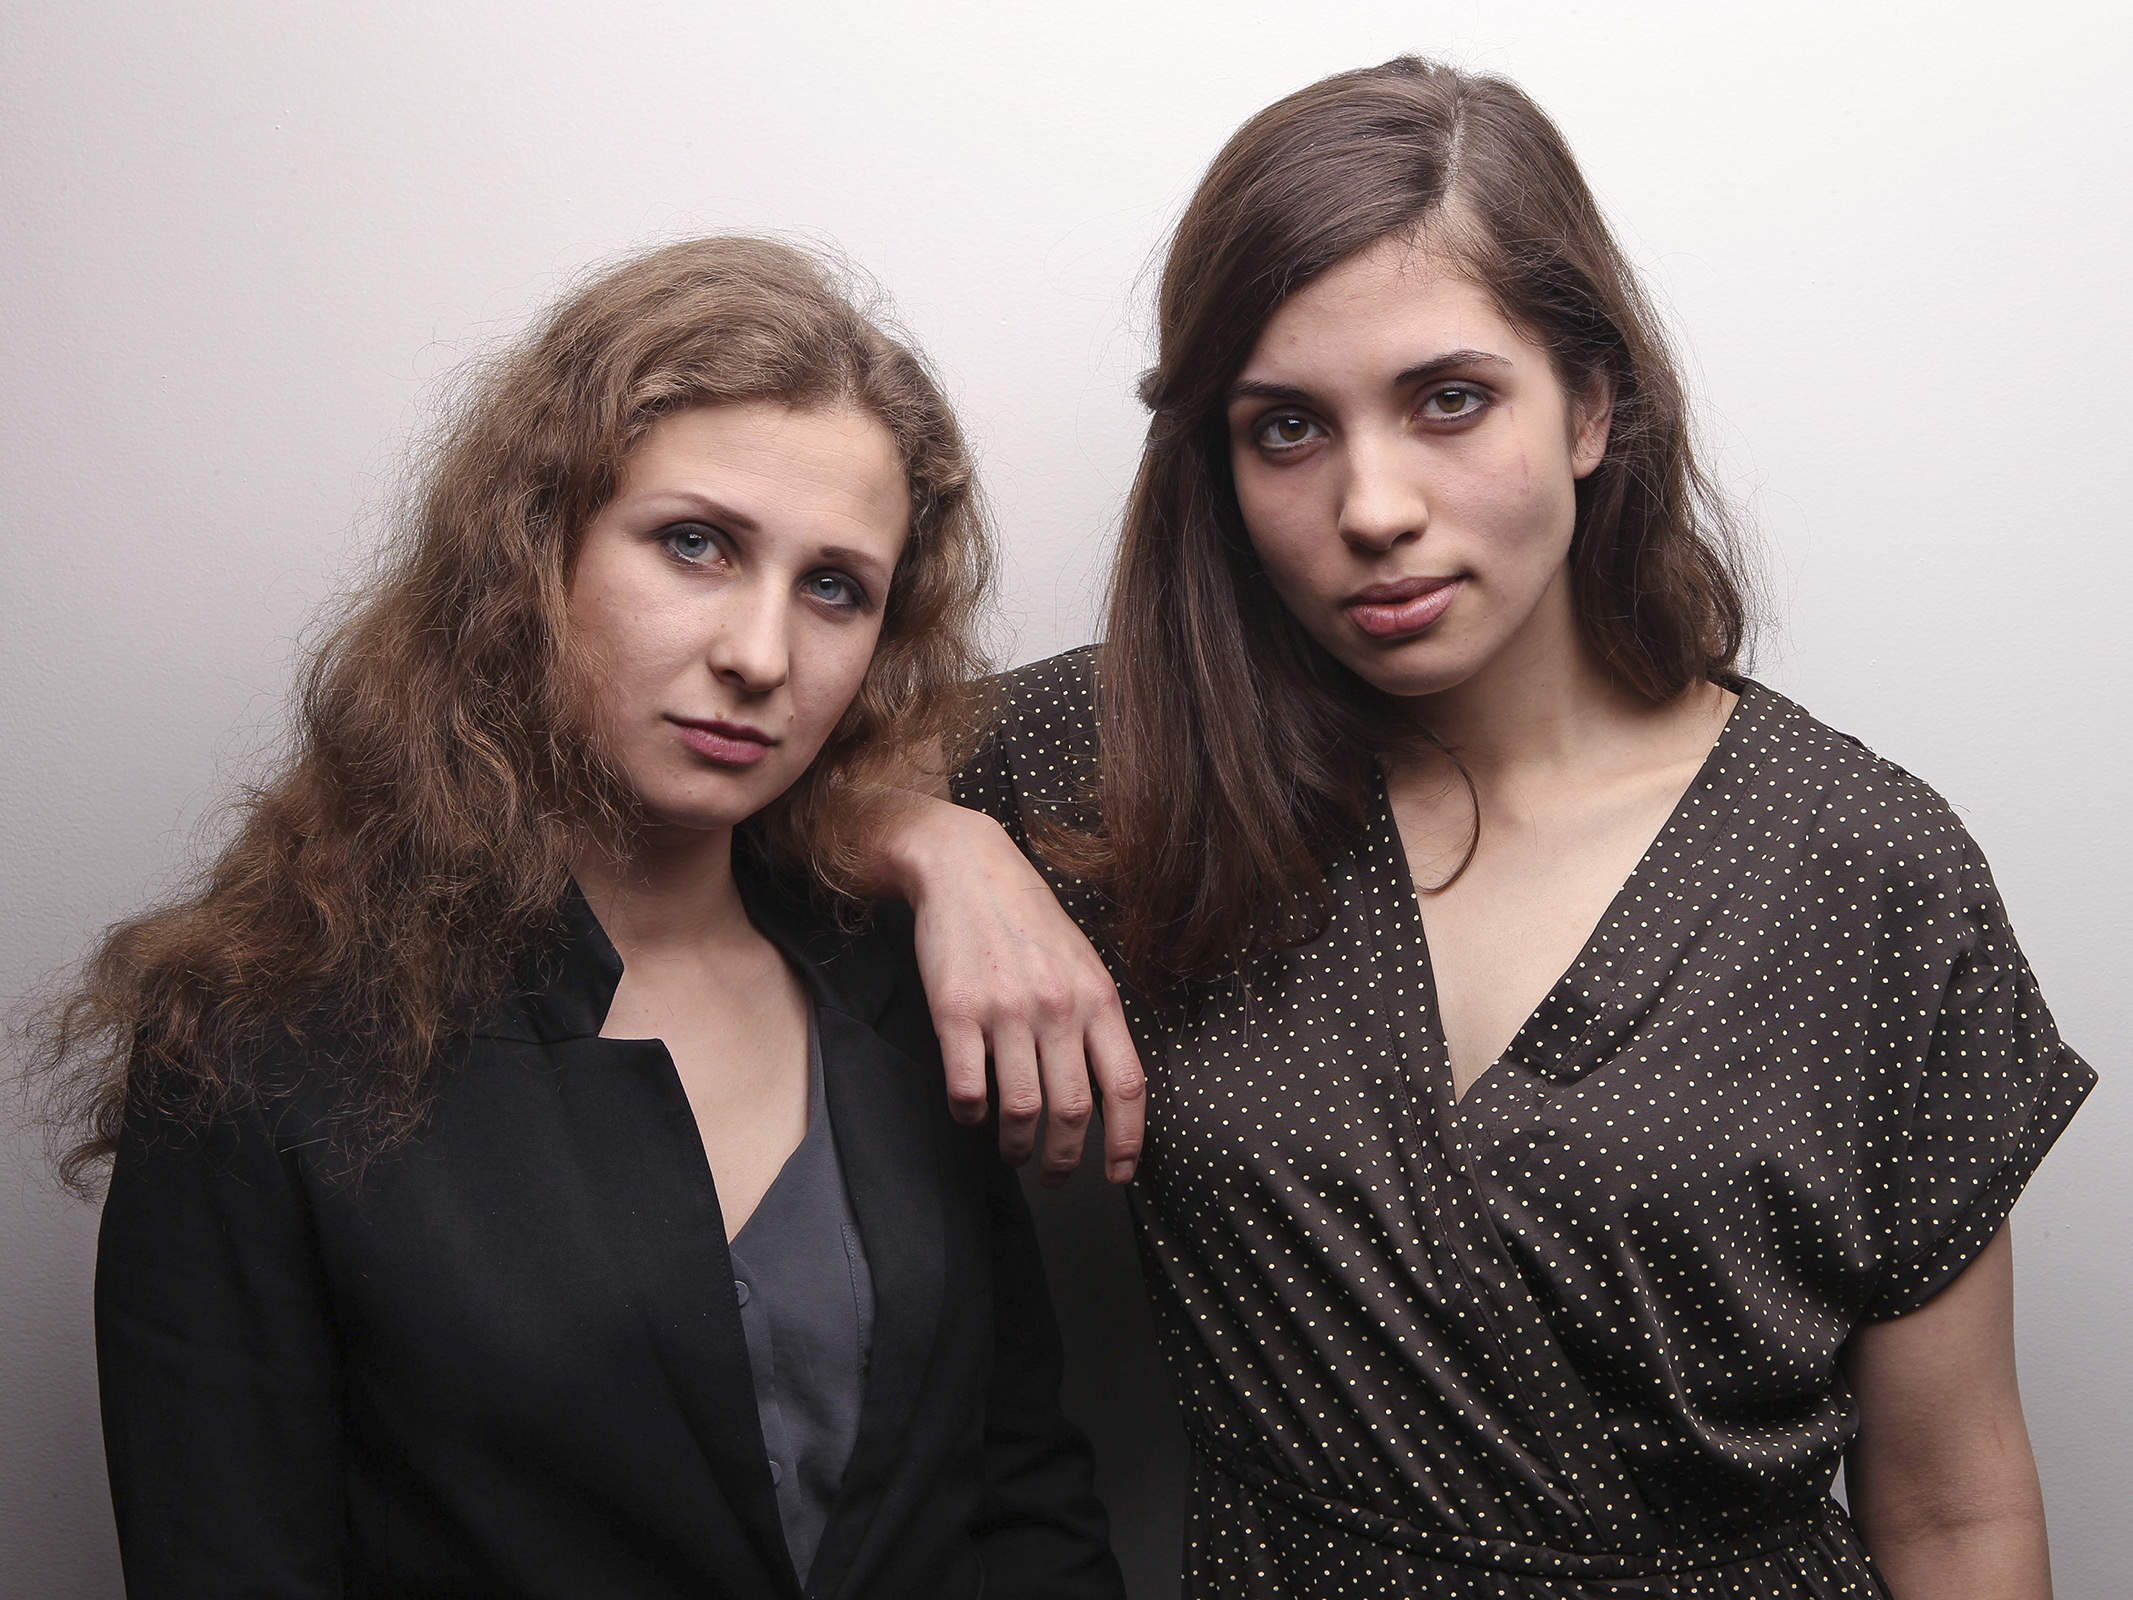 Pussy Riot and the new age of dissident art